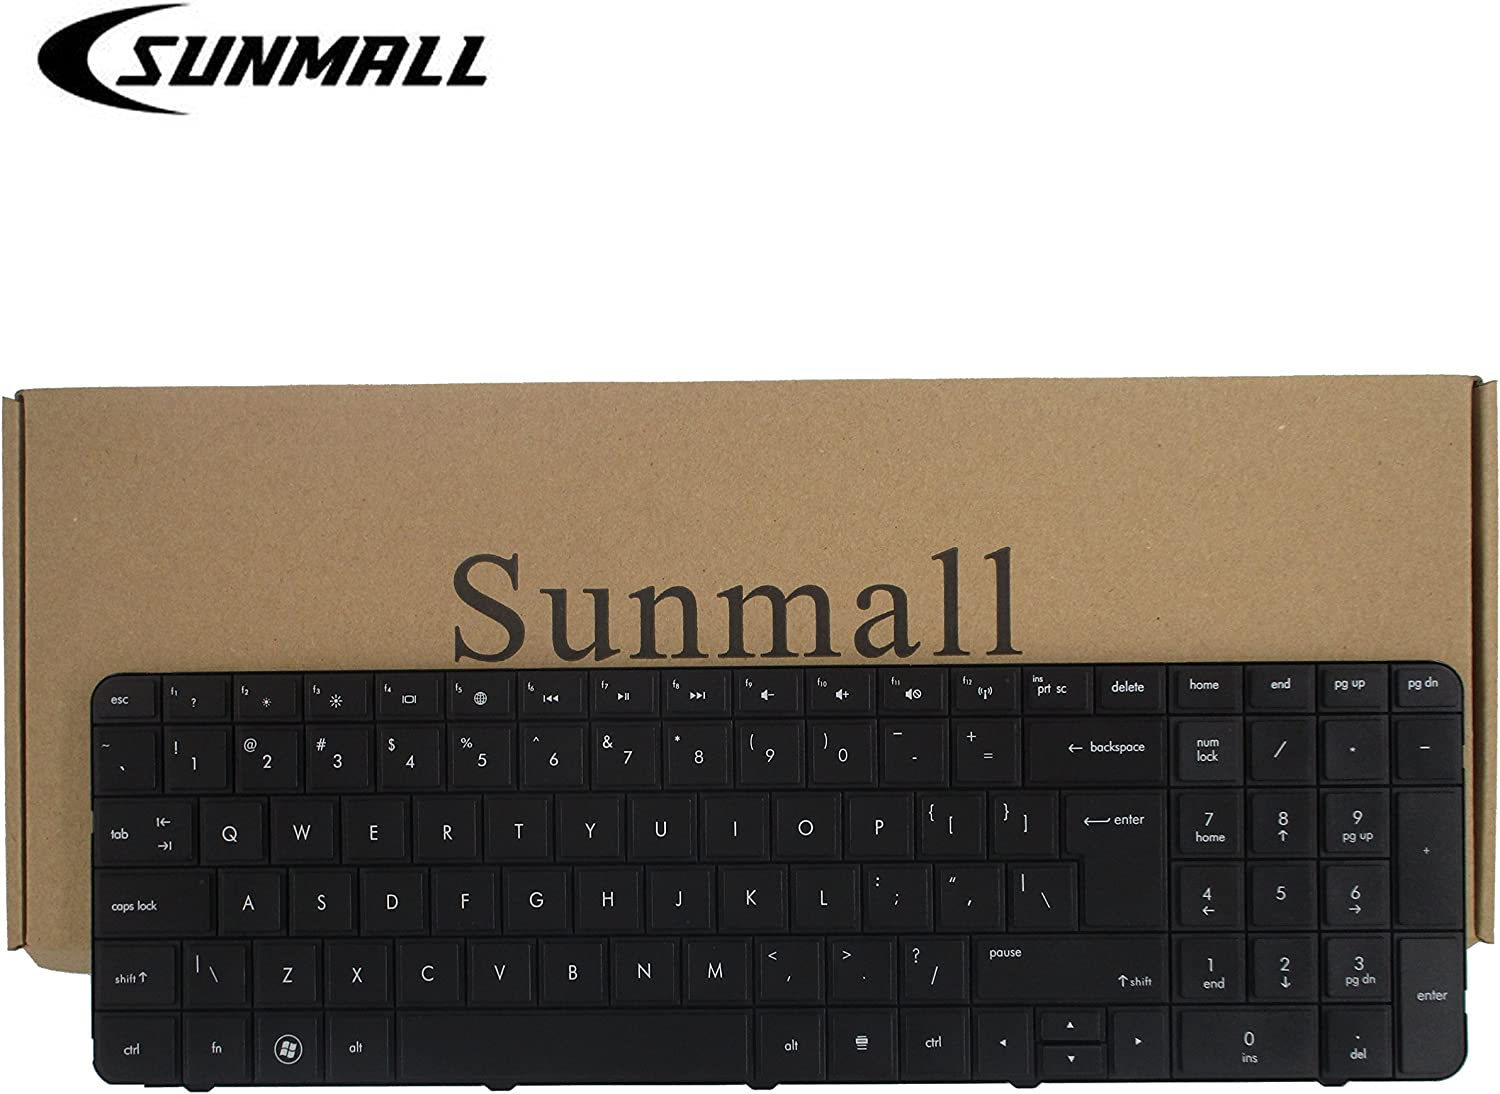 SUNMALL Laptop Keyboard with Big Enter for HP Pavilion G7 G7T R18 g7-1000 G7T-1000 G7-1100 G7-1150 G7-1200 G7-1310 Series g7-1219wm g7-1330ca g7-1329wm g7-1355dx g7-1260us Black US Layout